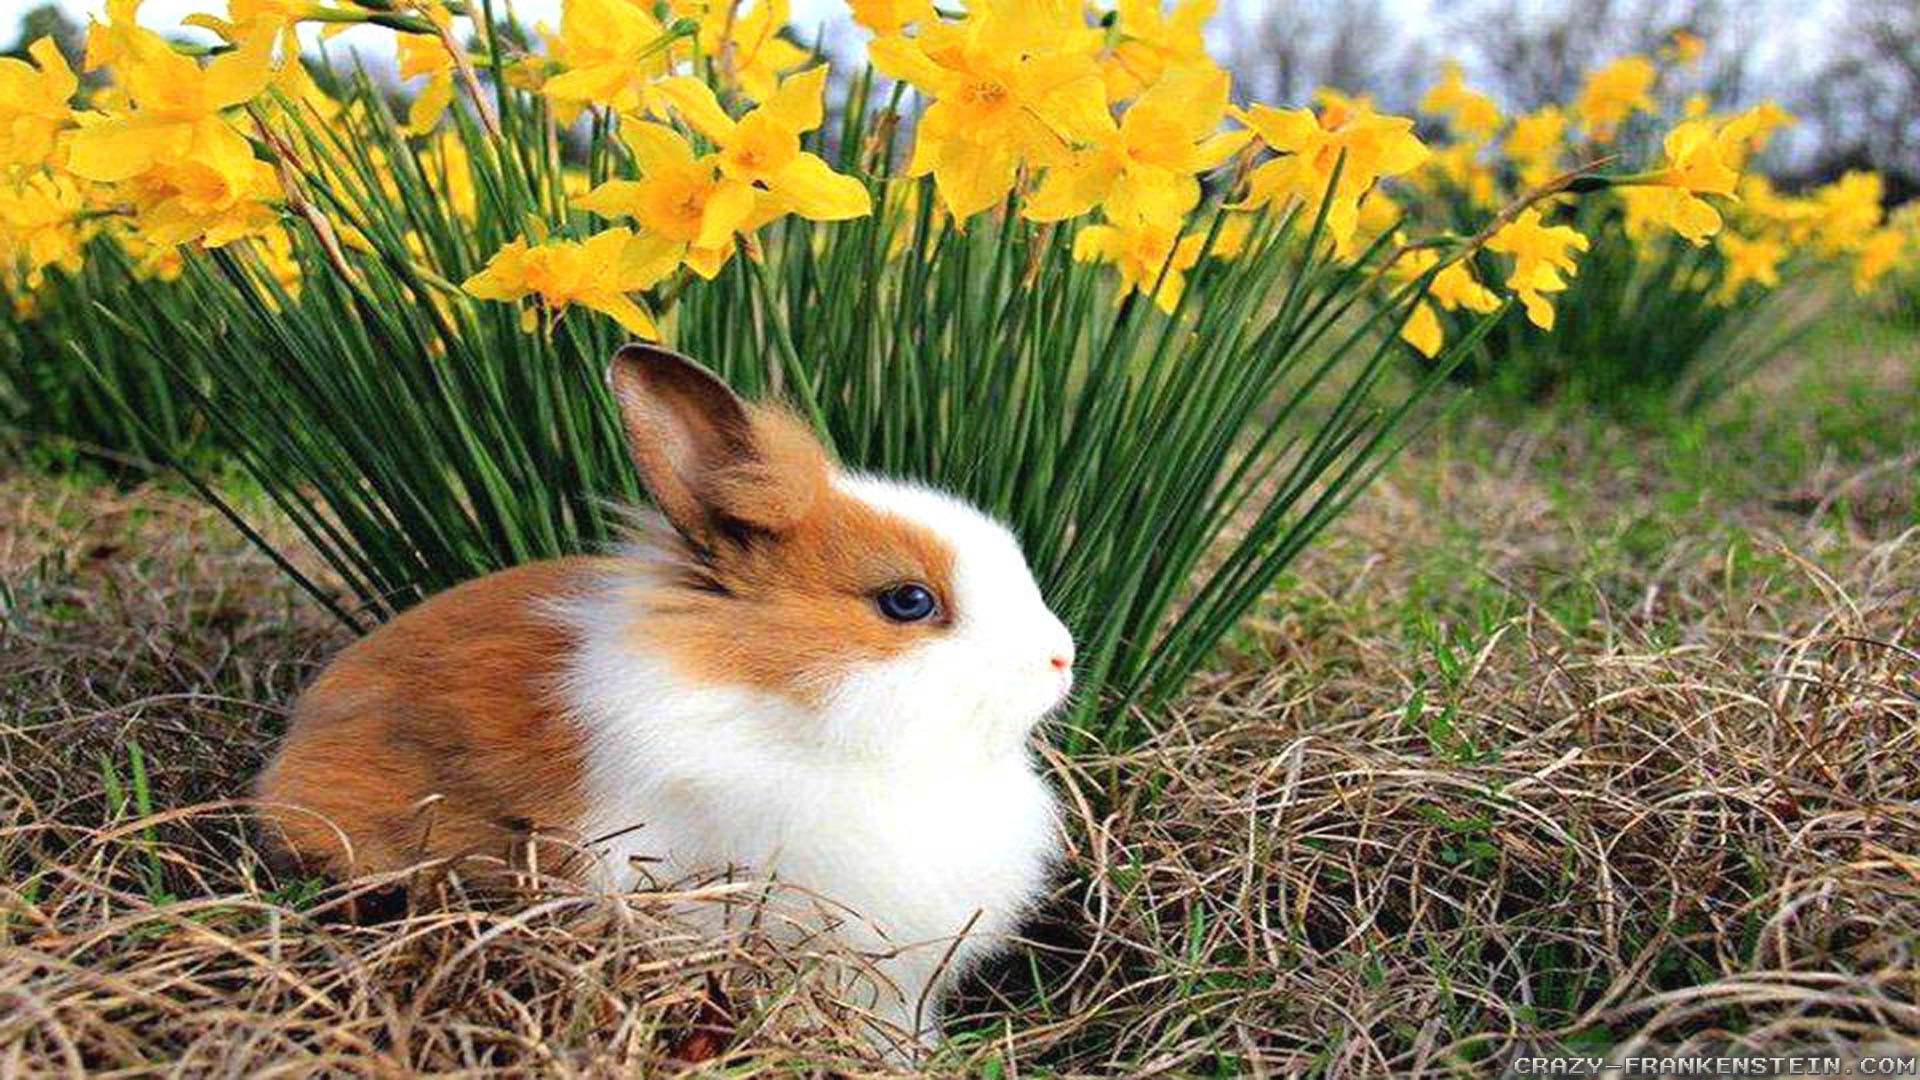 Spring animals desktop wallpaper wallpapertag - Animal 1920x1080 ...